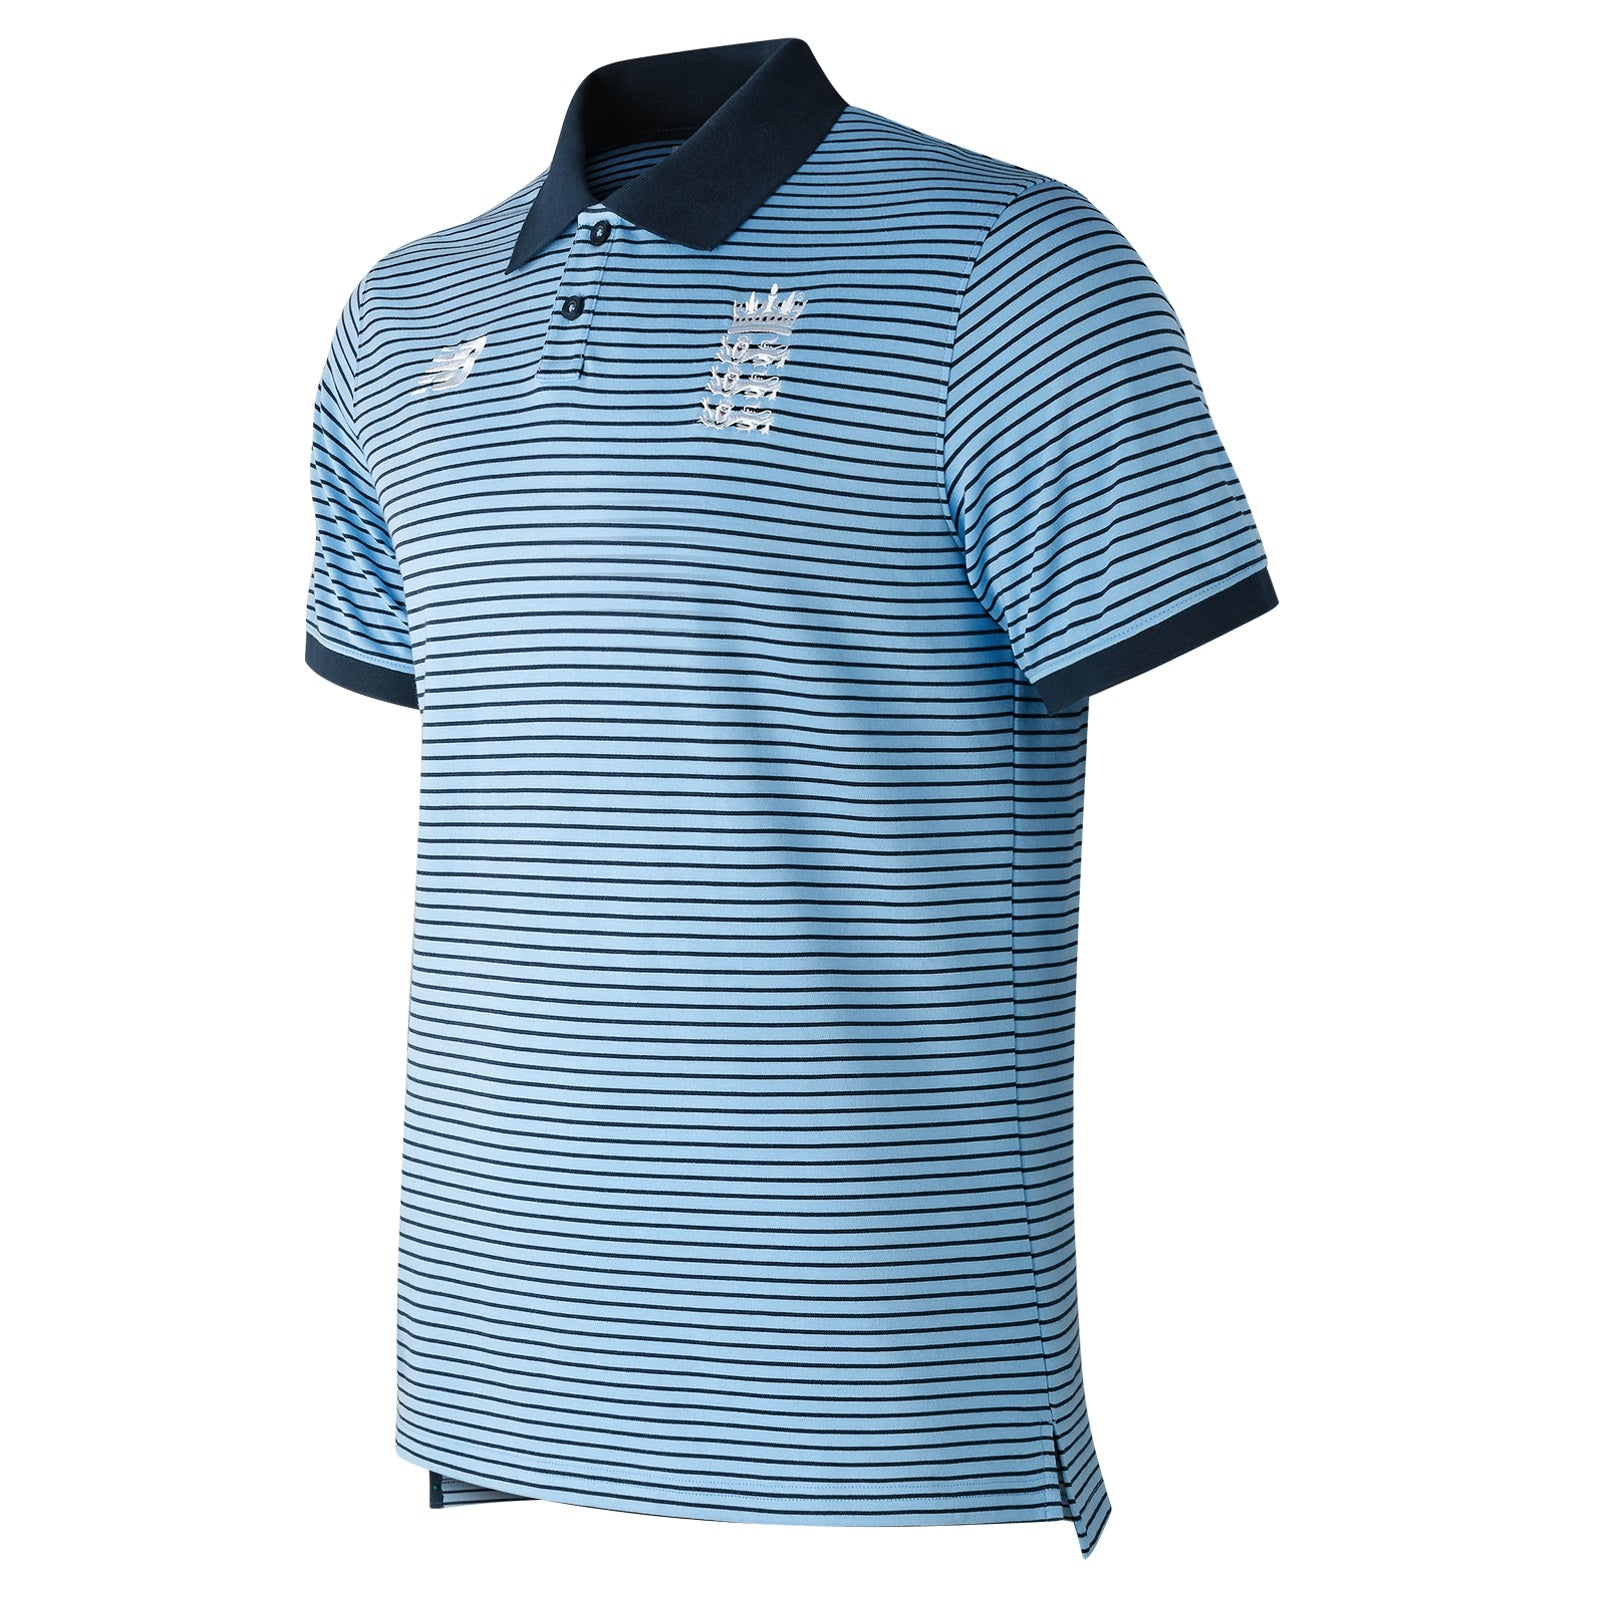 ENGLAND CRICKET REPLICA TRAVEL POLO WORLD CUP 2019 - ADULT